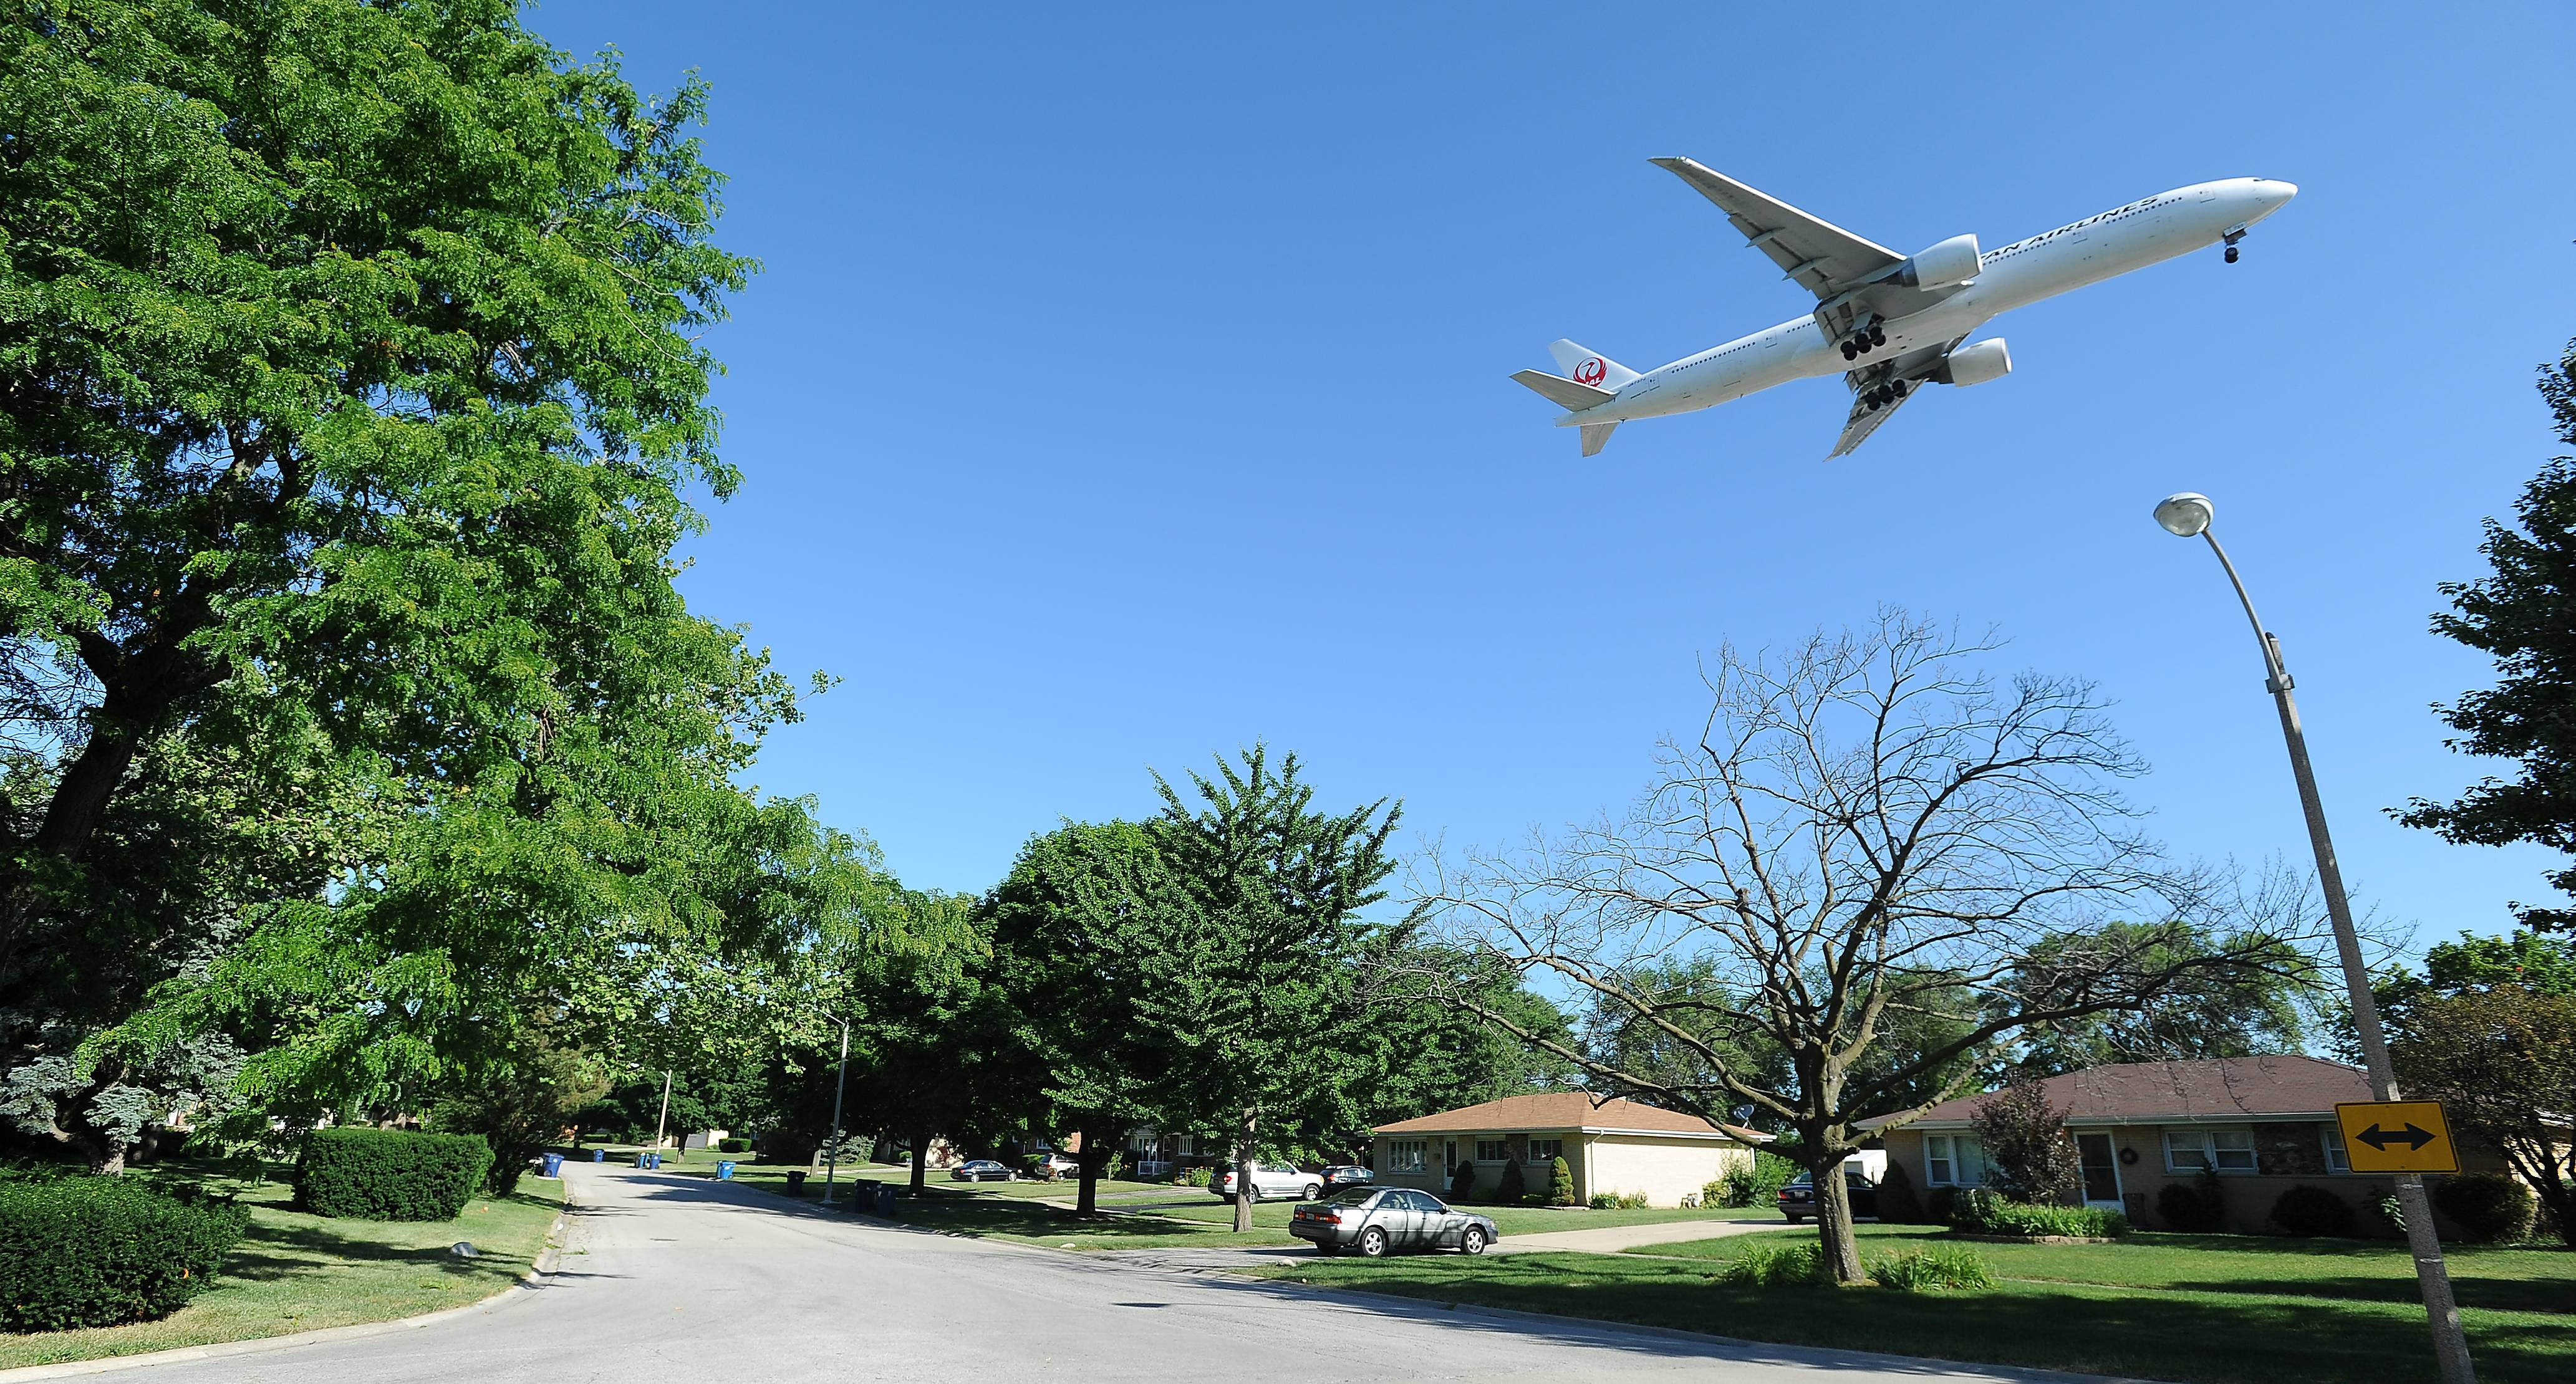 Editorial: In search of O'Hare Airport noise relief